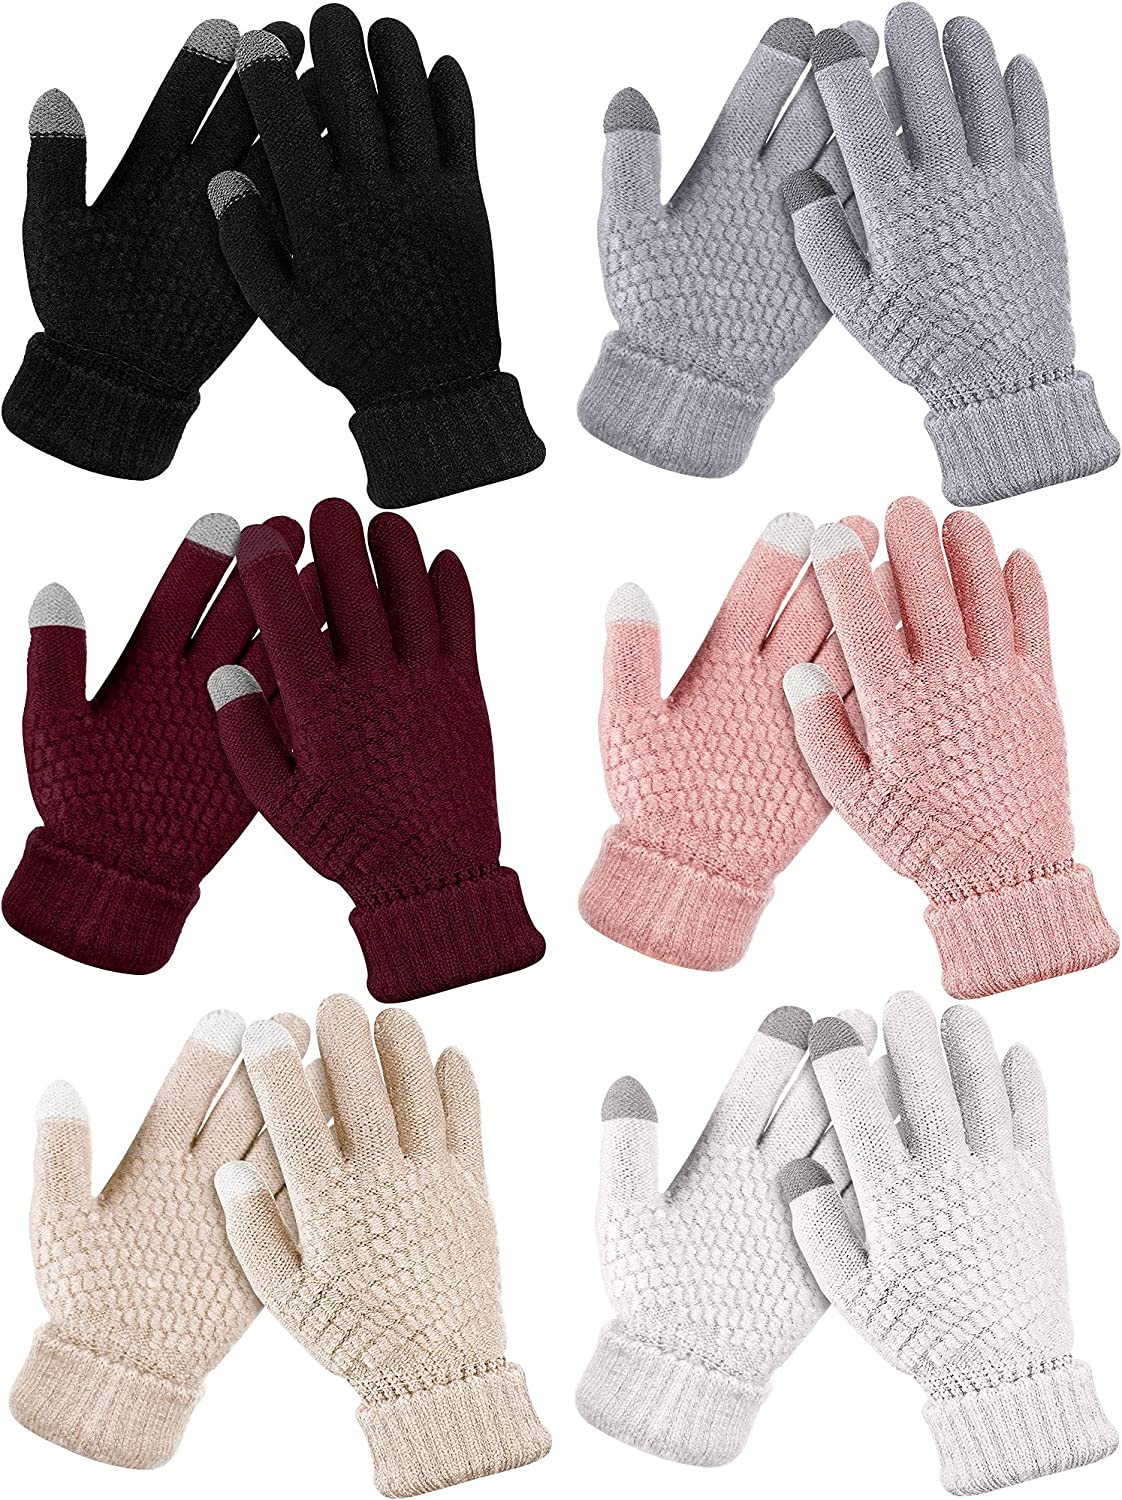 6 Pairs Women's Winter Knitted Touchscreen Gloves Warm Fleece Lined Touch Screen Gloves Elastic Thermal Texting Gloves Knit Mitten Gloves